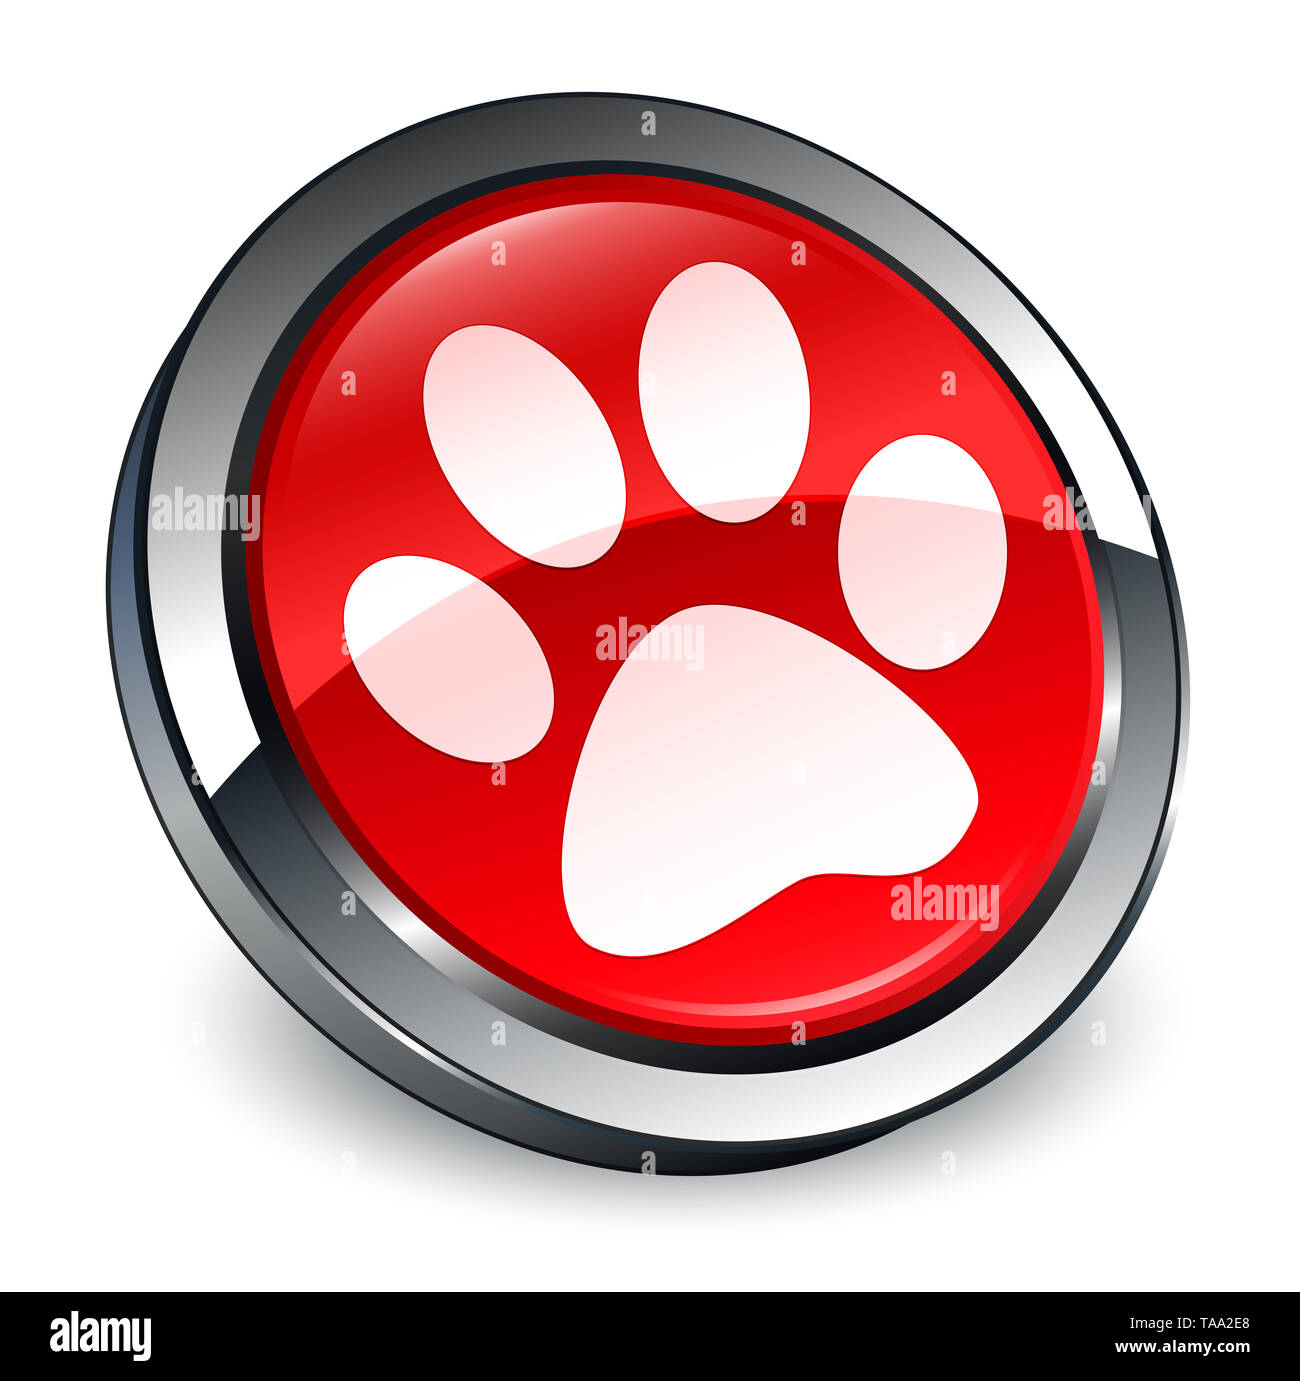 Animal footprint icon isolated on 3d red round button abstract illustration - Stock Image